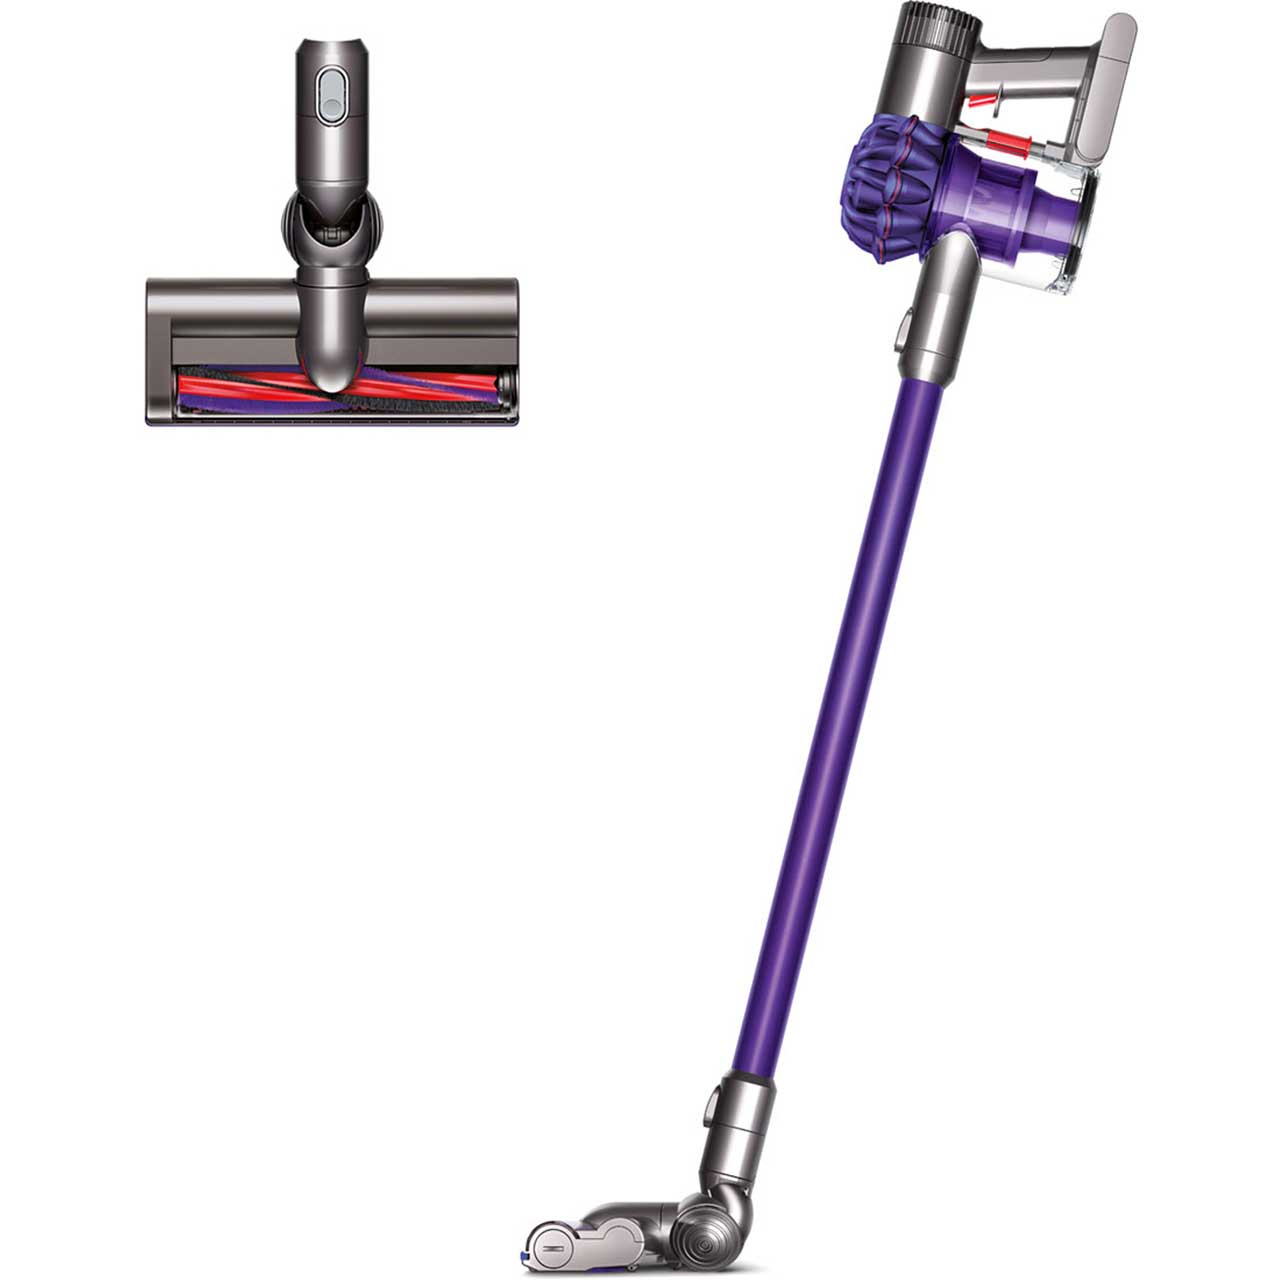 Dyson V6 Animal V6A Cordless Vacuum Cleaner with Pet Hair Removal and up to 20 Minutes Run Time